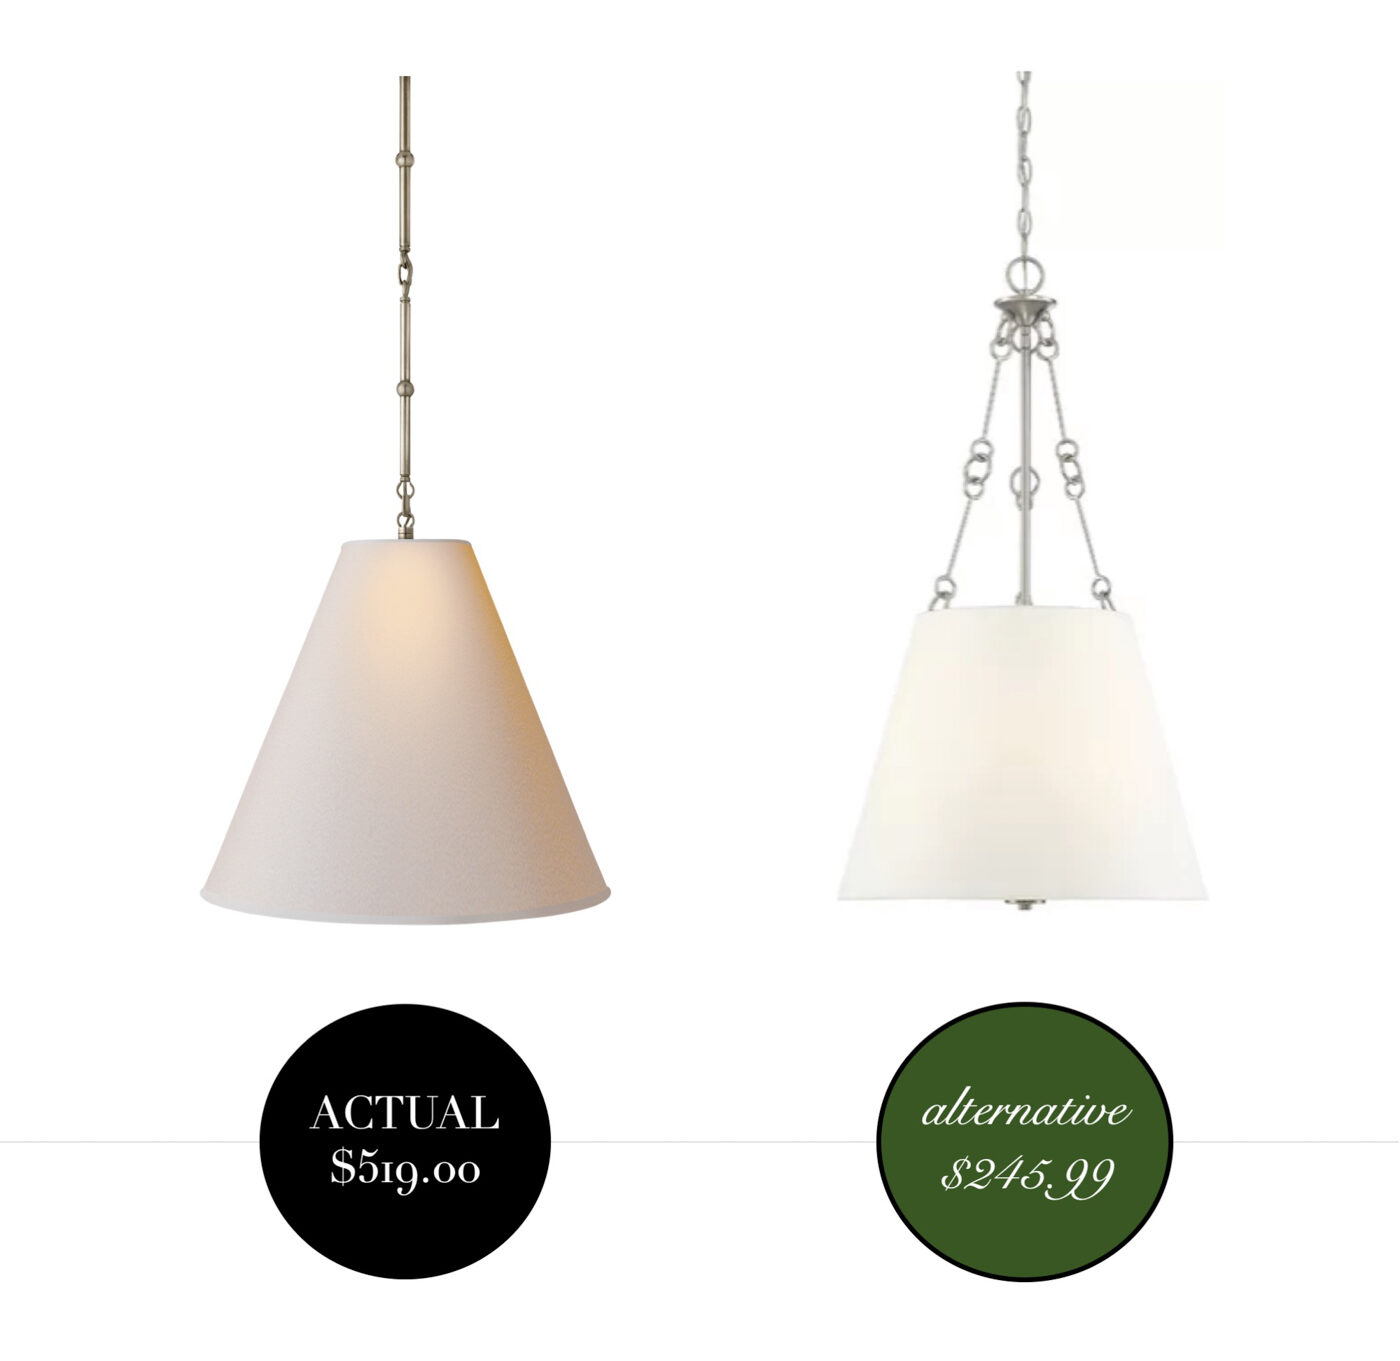 Designer Lighting Dupes- how to get the look for less